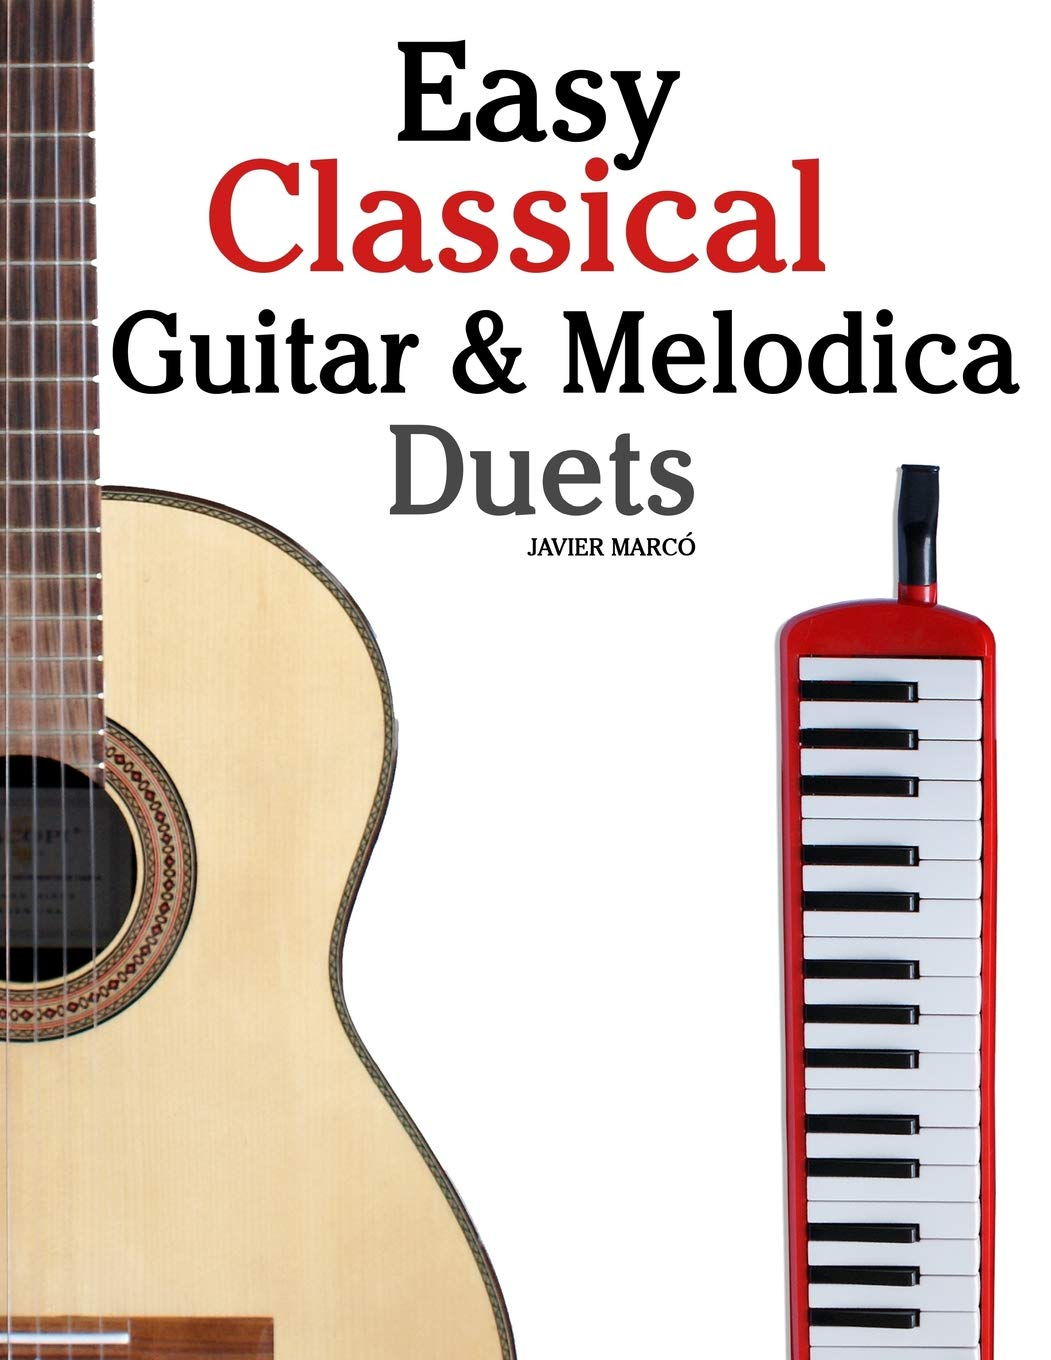 Download Easy Classical Guitar & Melodica Duets: Featuring music of Bach, Mozart, Beethoven, Wagner and others. For Classical Guitar and Melodica. In Standard Notation and Tablature. pdf epub